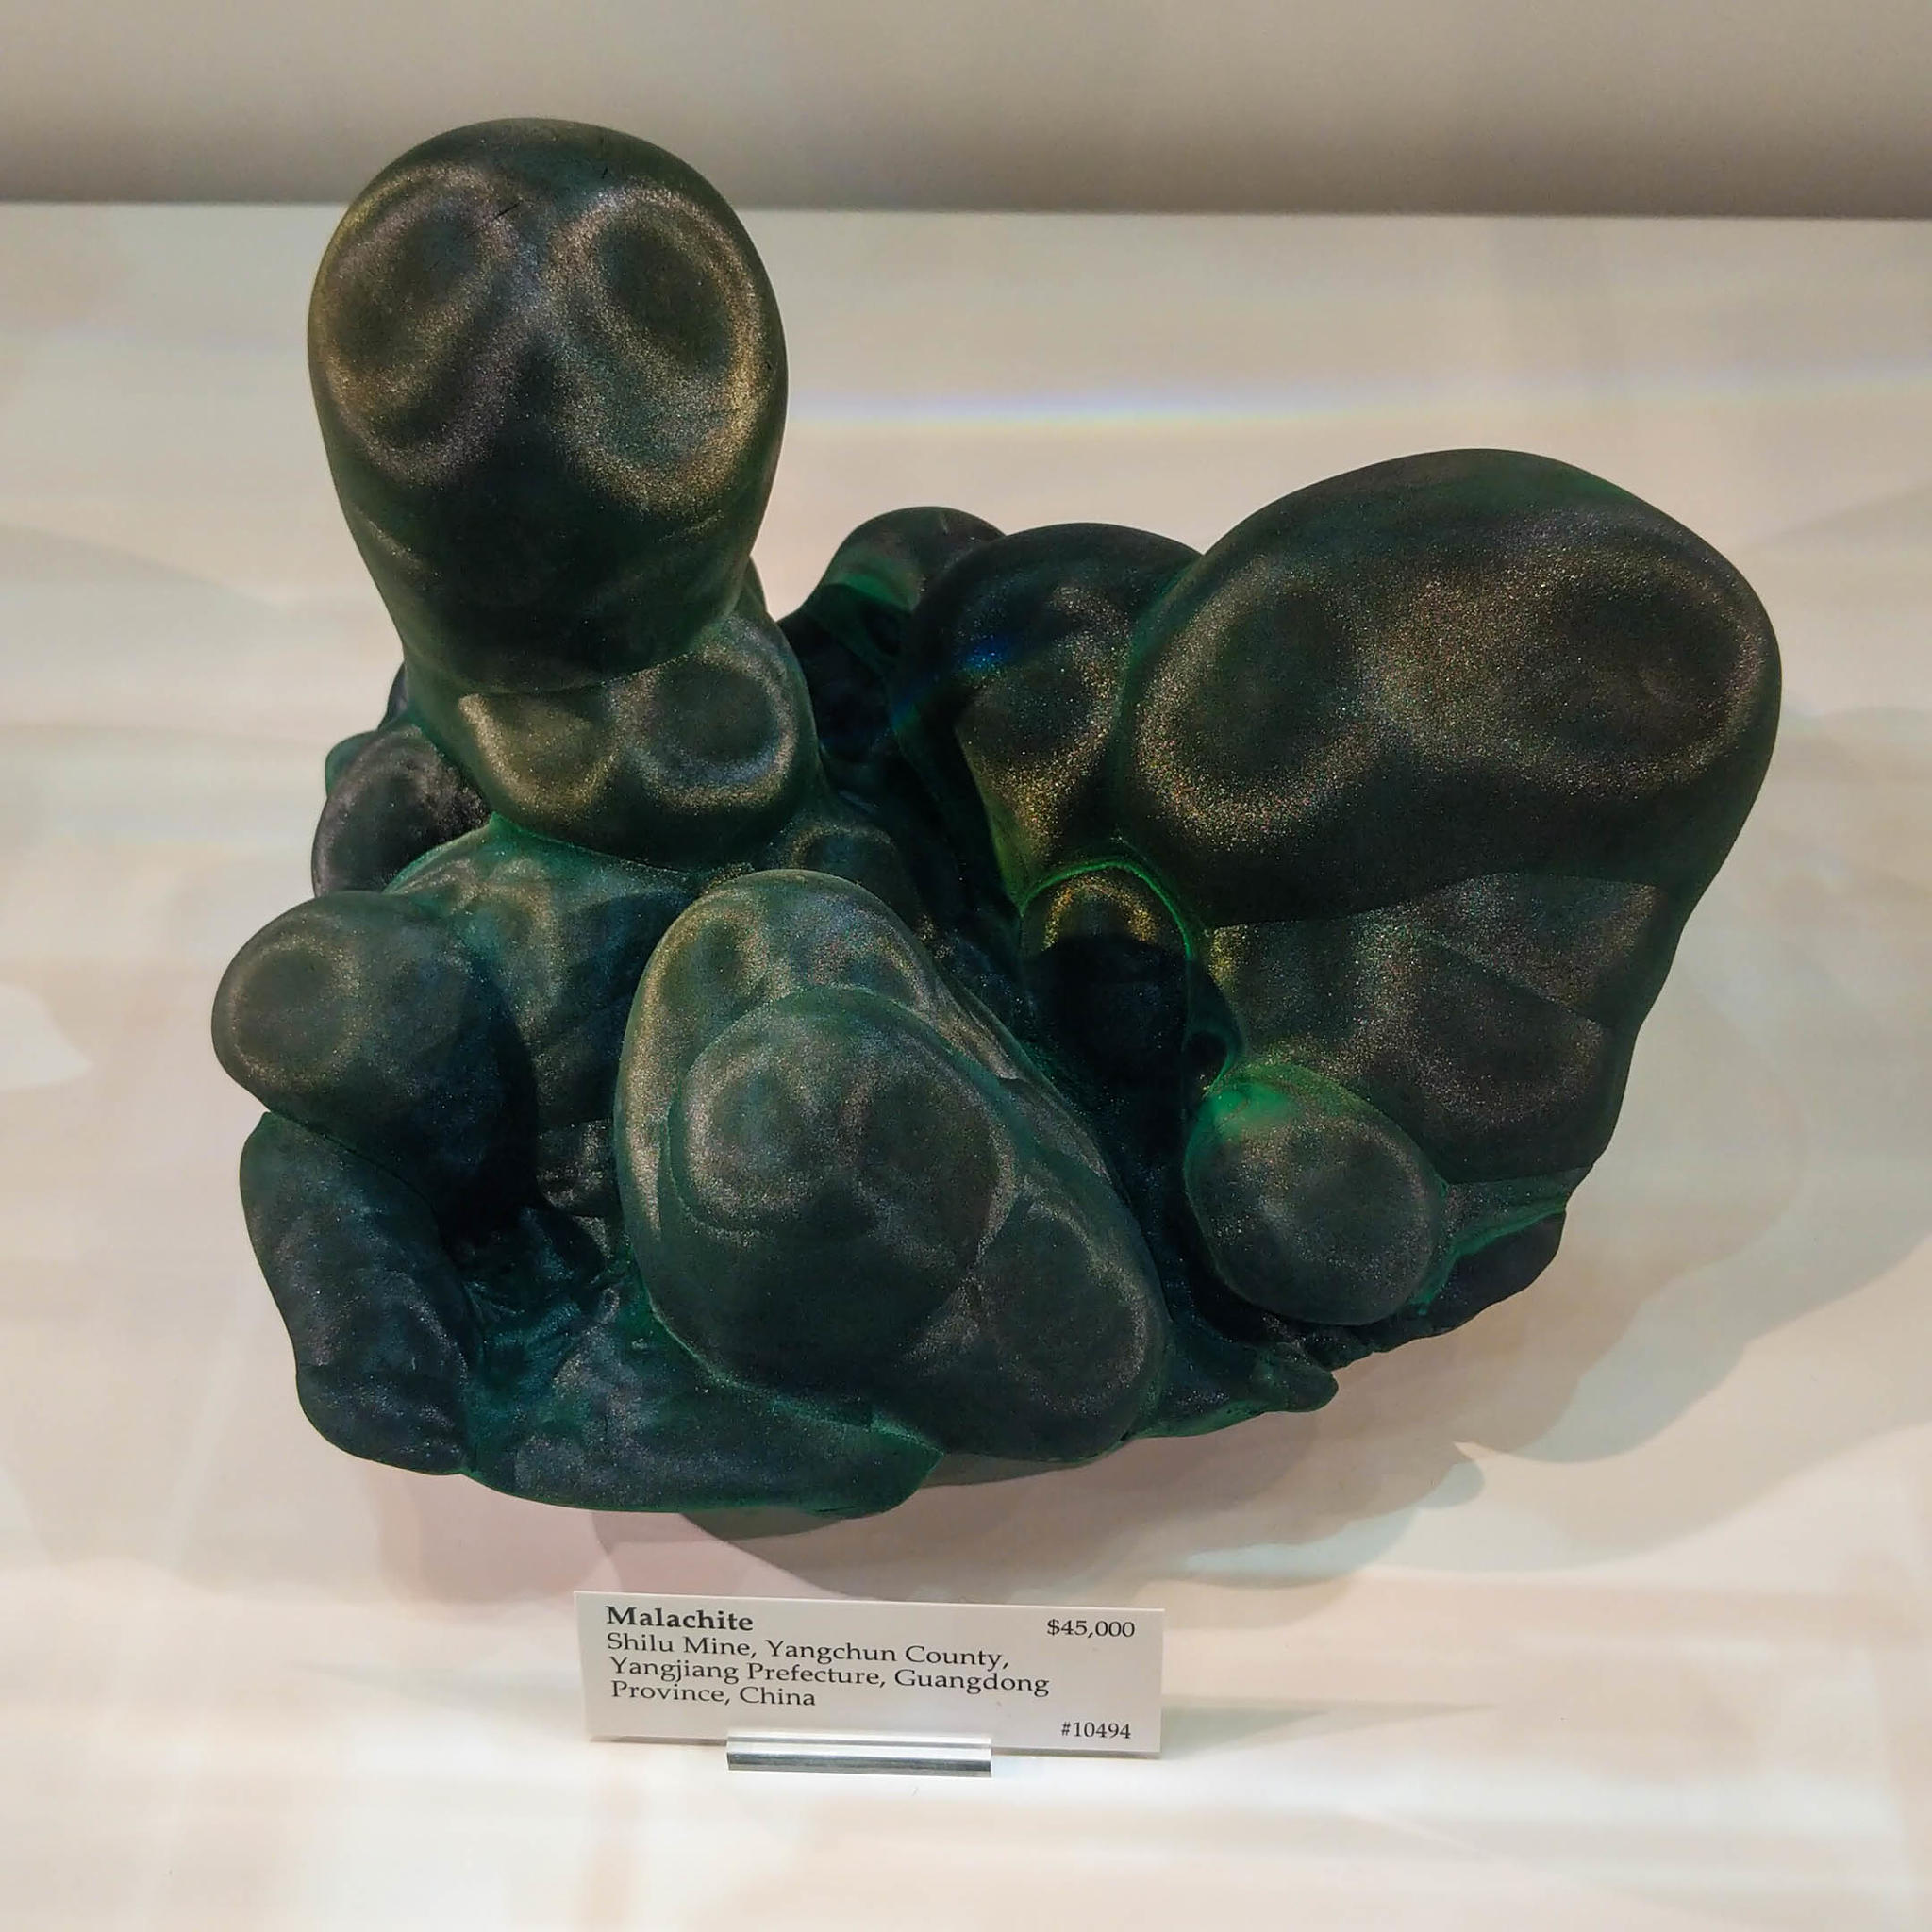 Satiny, dark Malachite on display at the 2018 Tucson Gem and Mineral Show